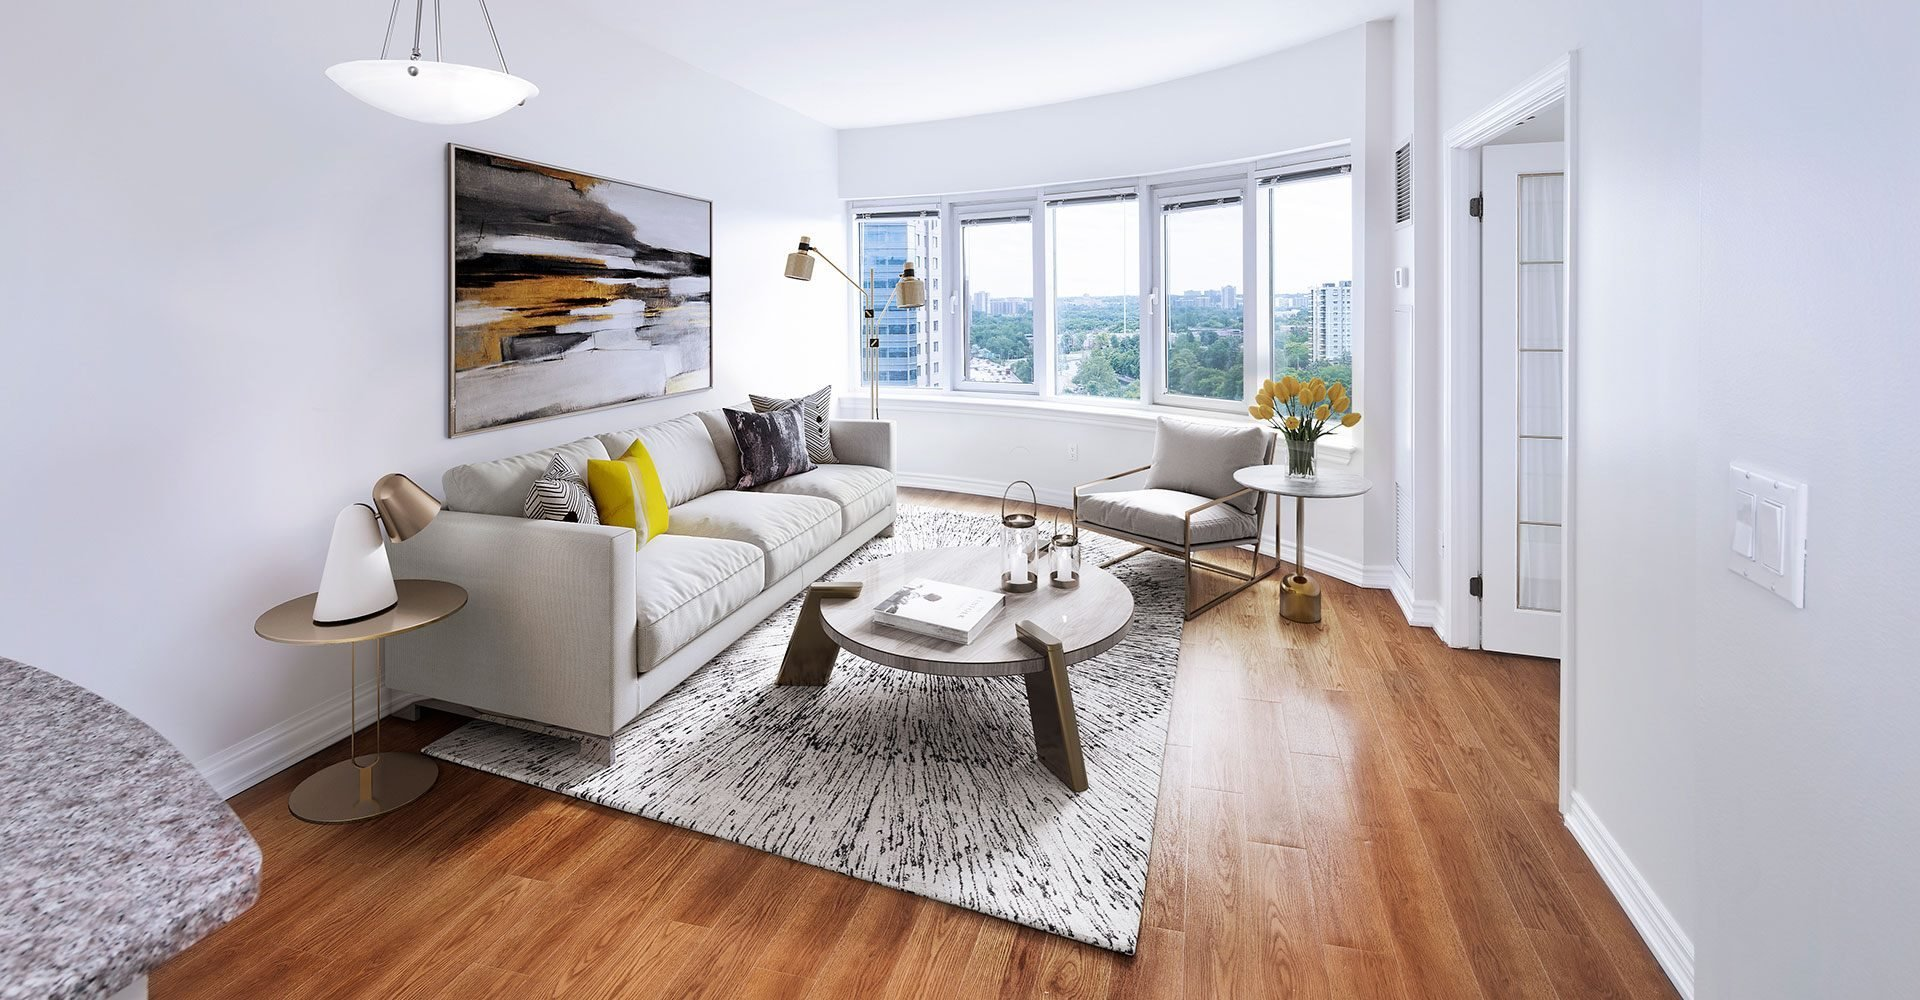 Staged unit with large windows allowing in lots of natural light